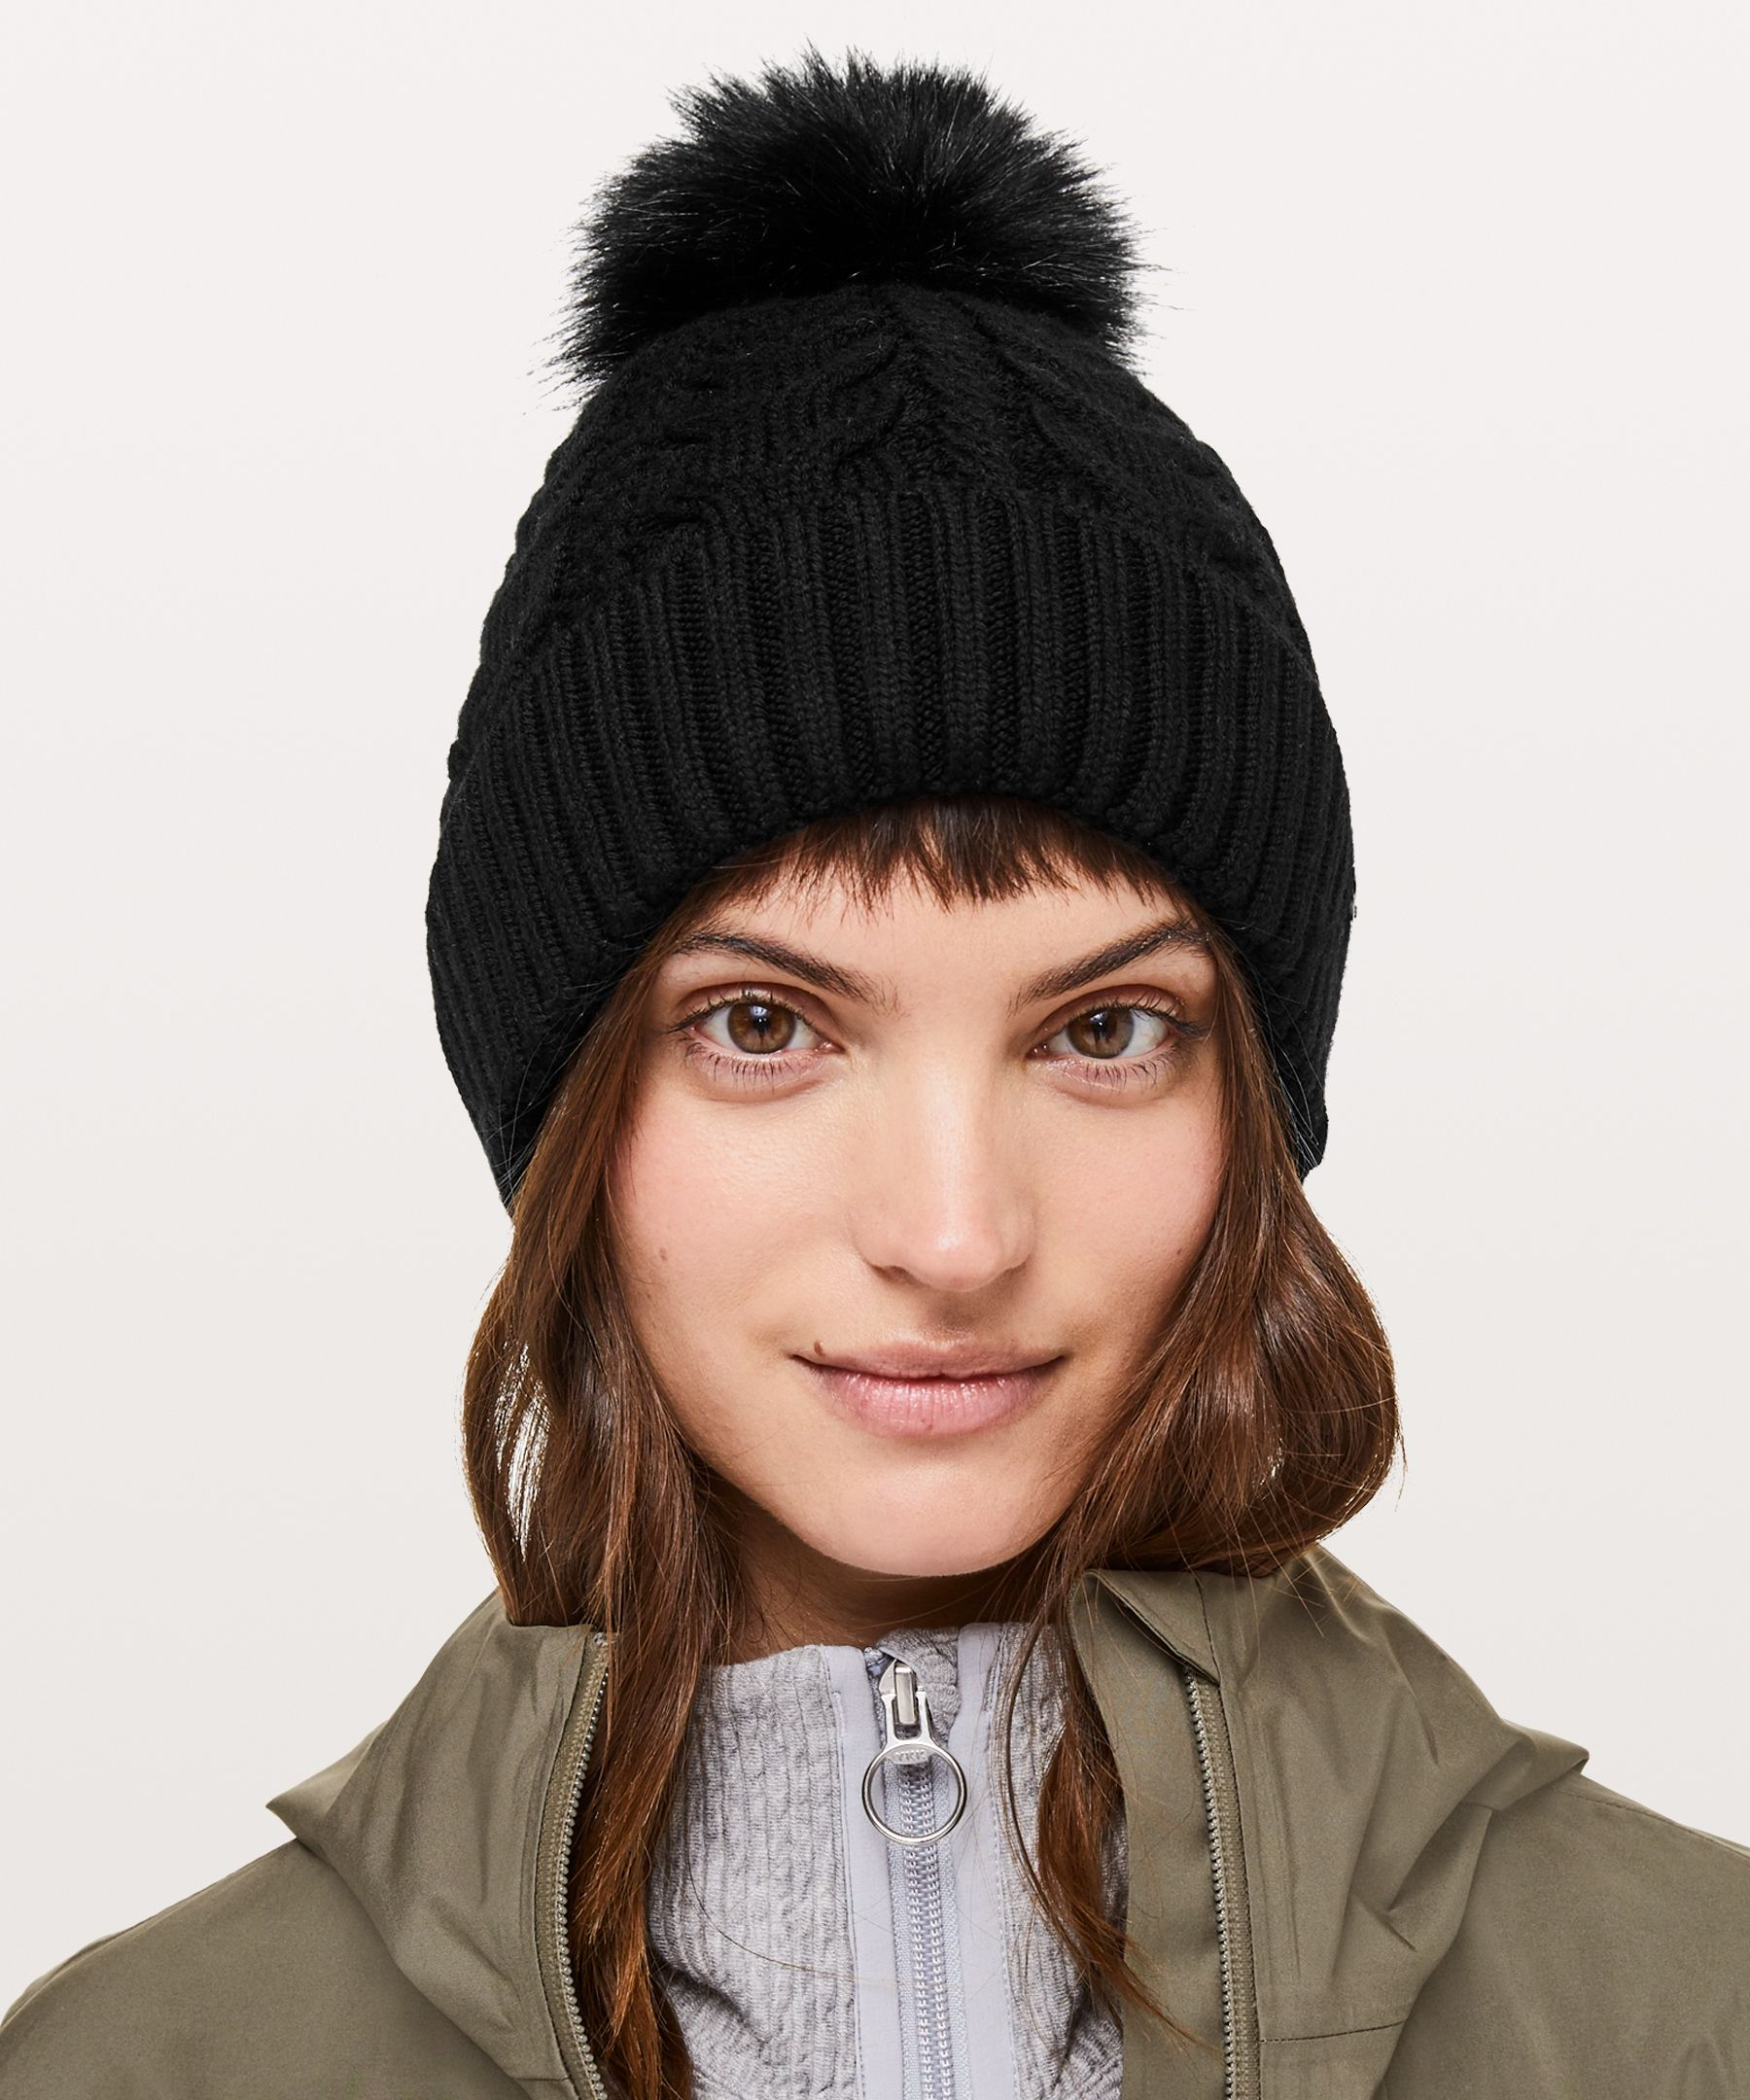 84781a43474 Twisted Bliss Beanie - Stay warm all season long in this cable-knit beanie